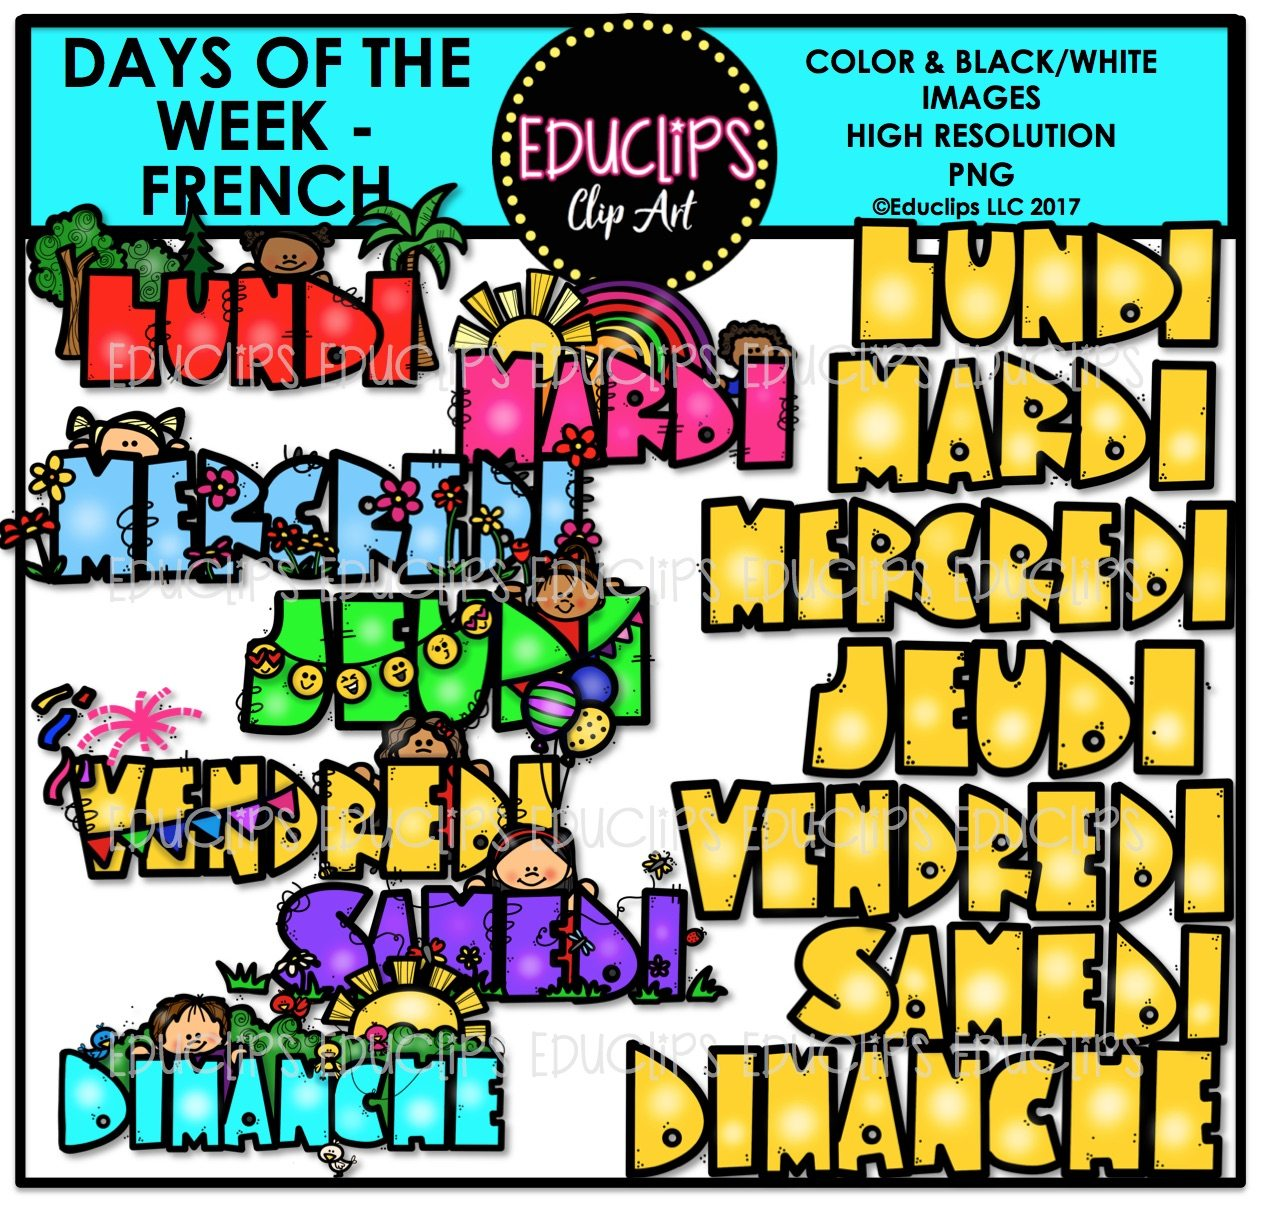 days of the week french clip art bundle color and b w welcome to educlips store. Black Bedroom Furniture Sets. Home Design Ideas